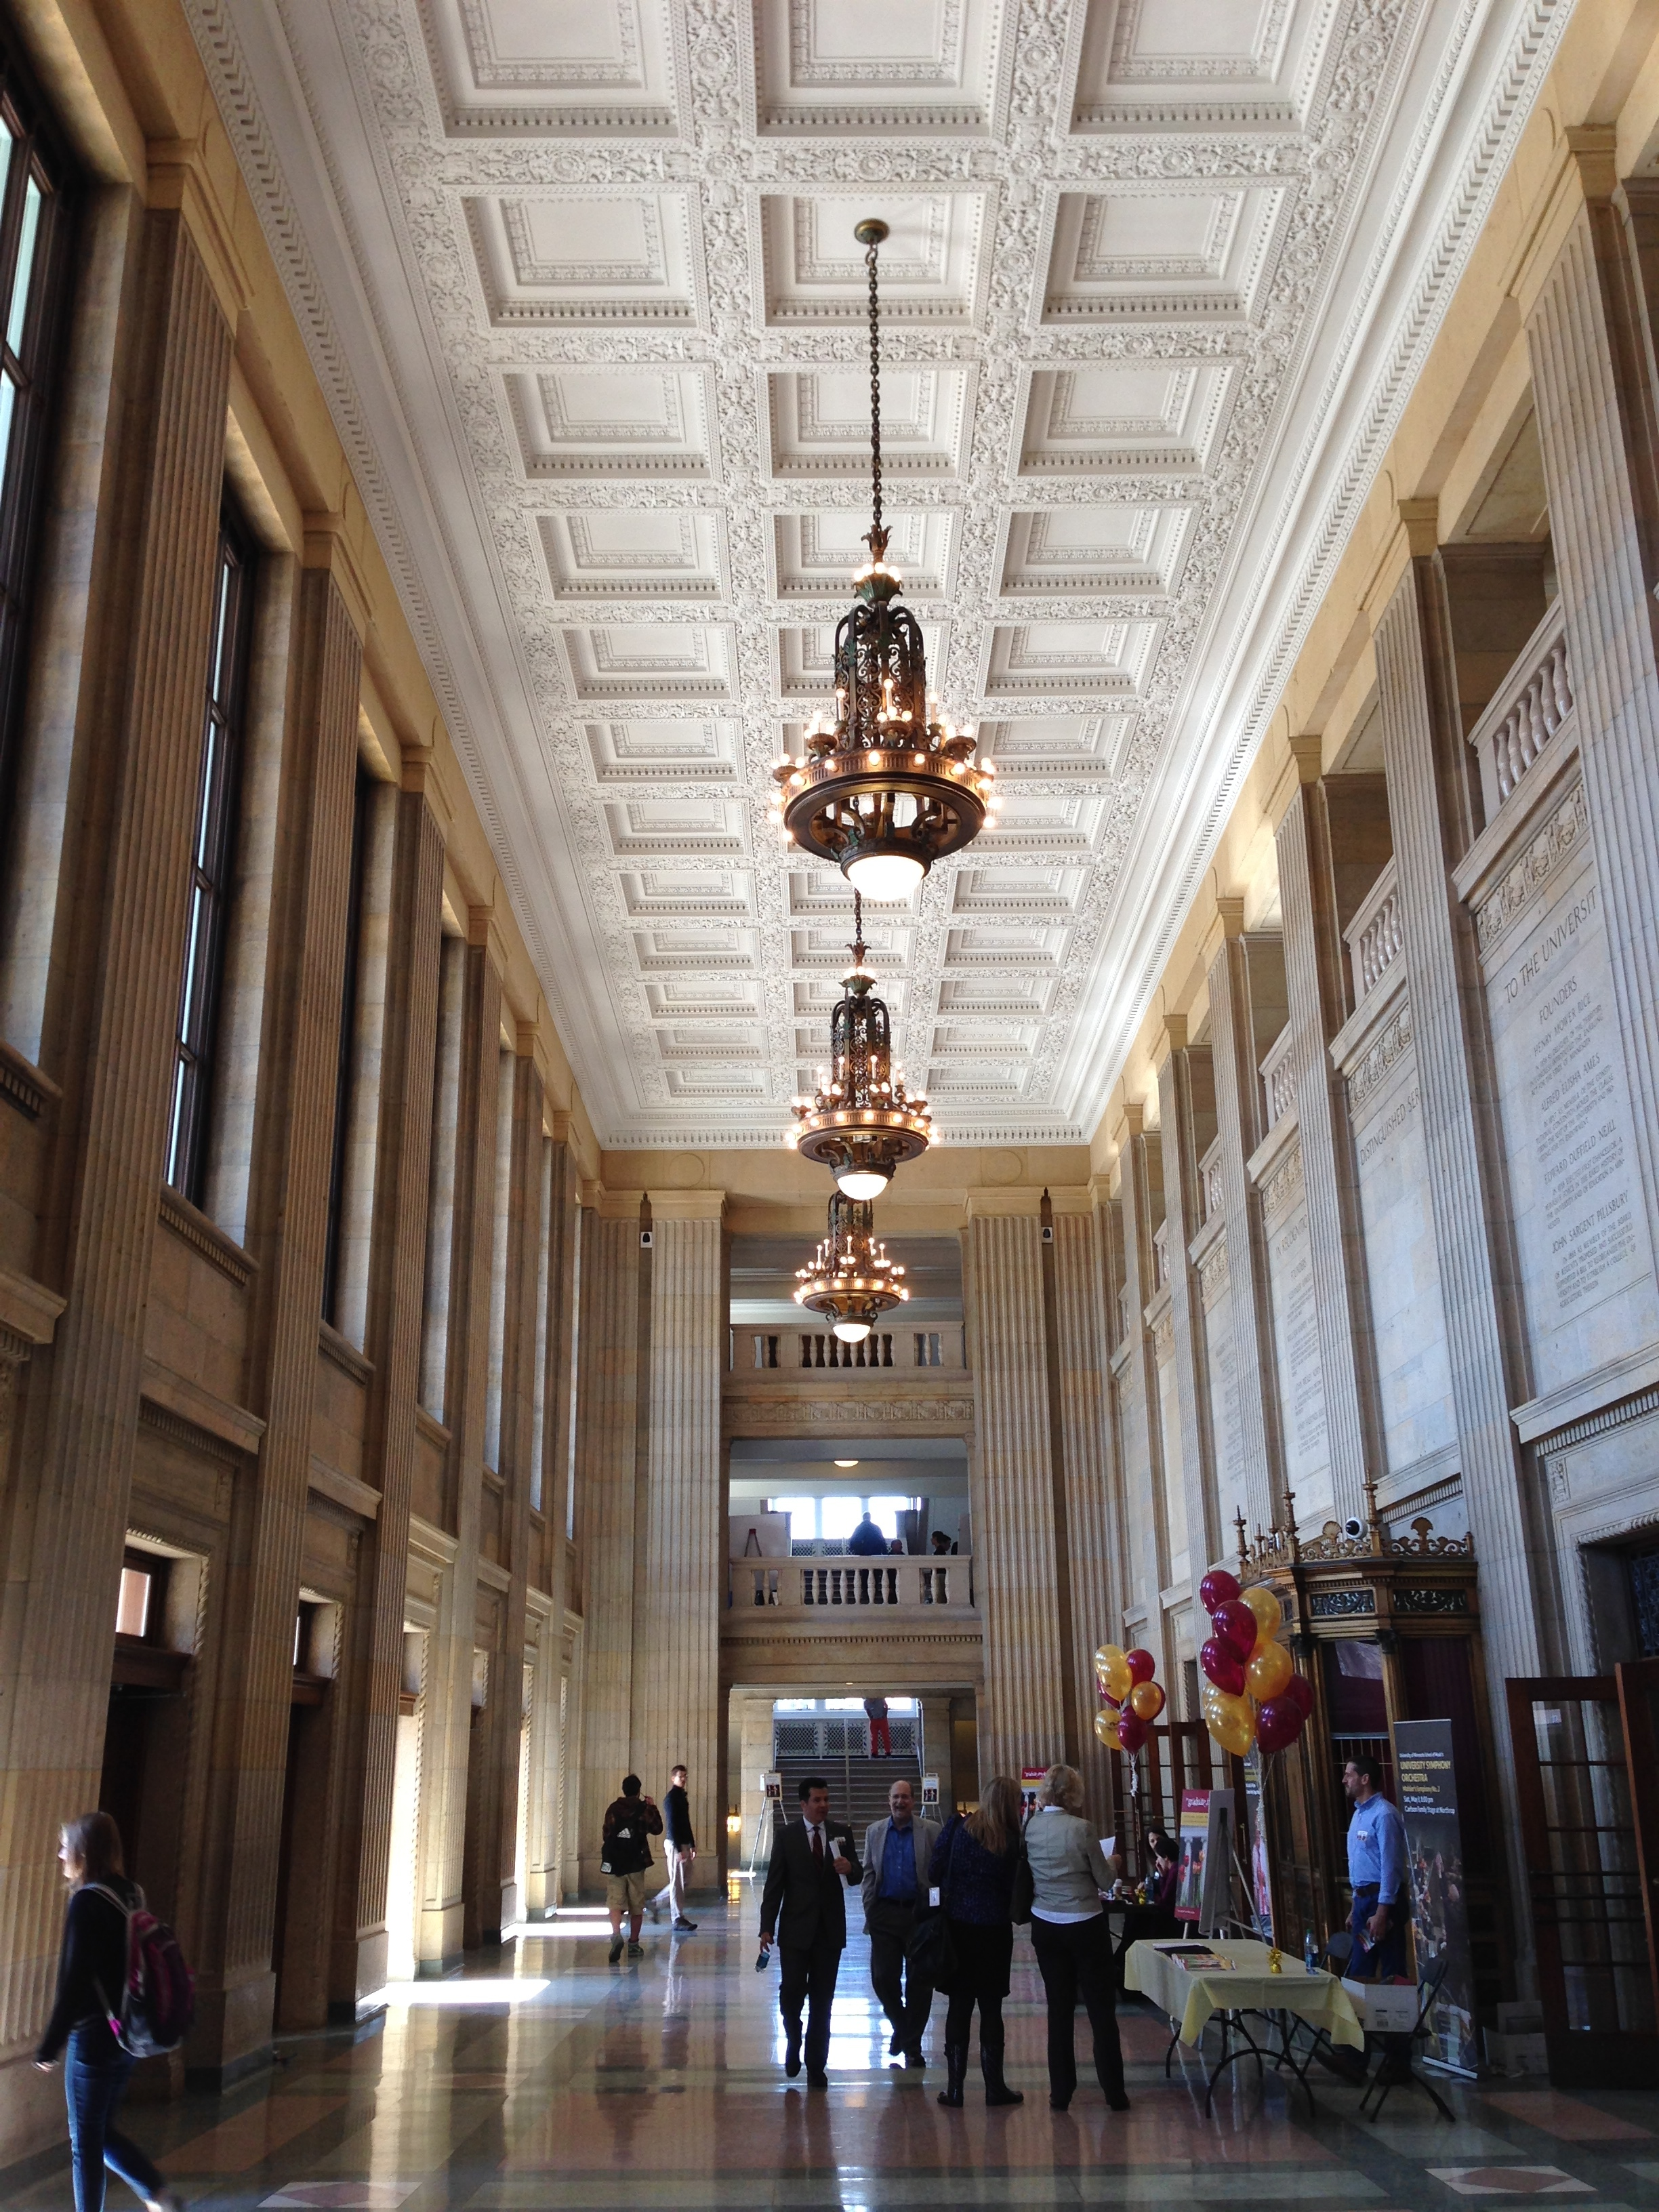 Foyer And Entryways University : File northrop university of minnesota entrance hall g